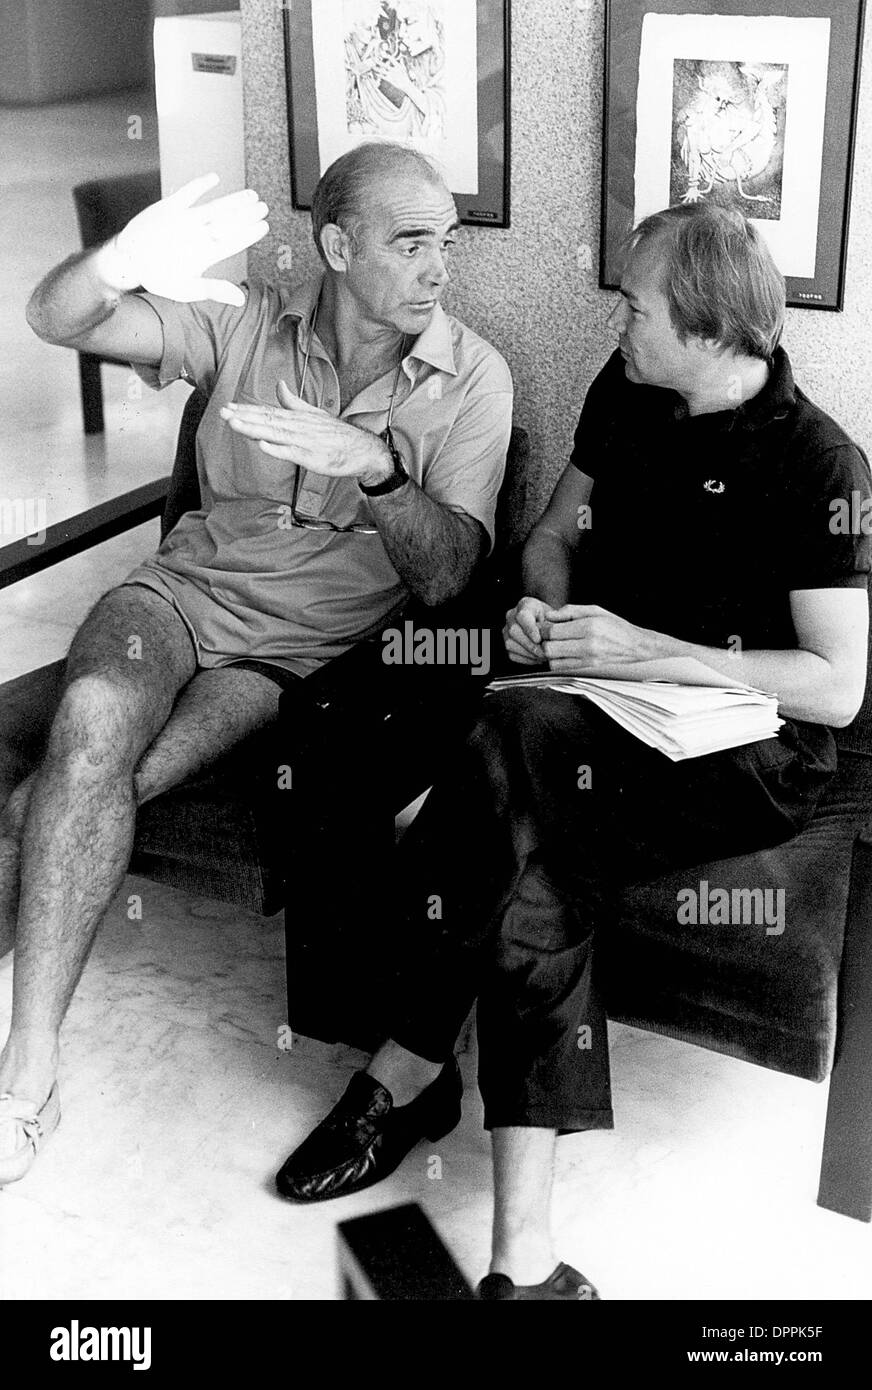 apr 6 2006 sean connery with klaus maria brandauer 1982 stock photo royalty free image. Black Bedroom Furniture Sets. Home Design Ideas